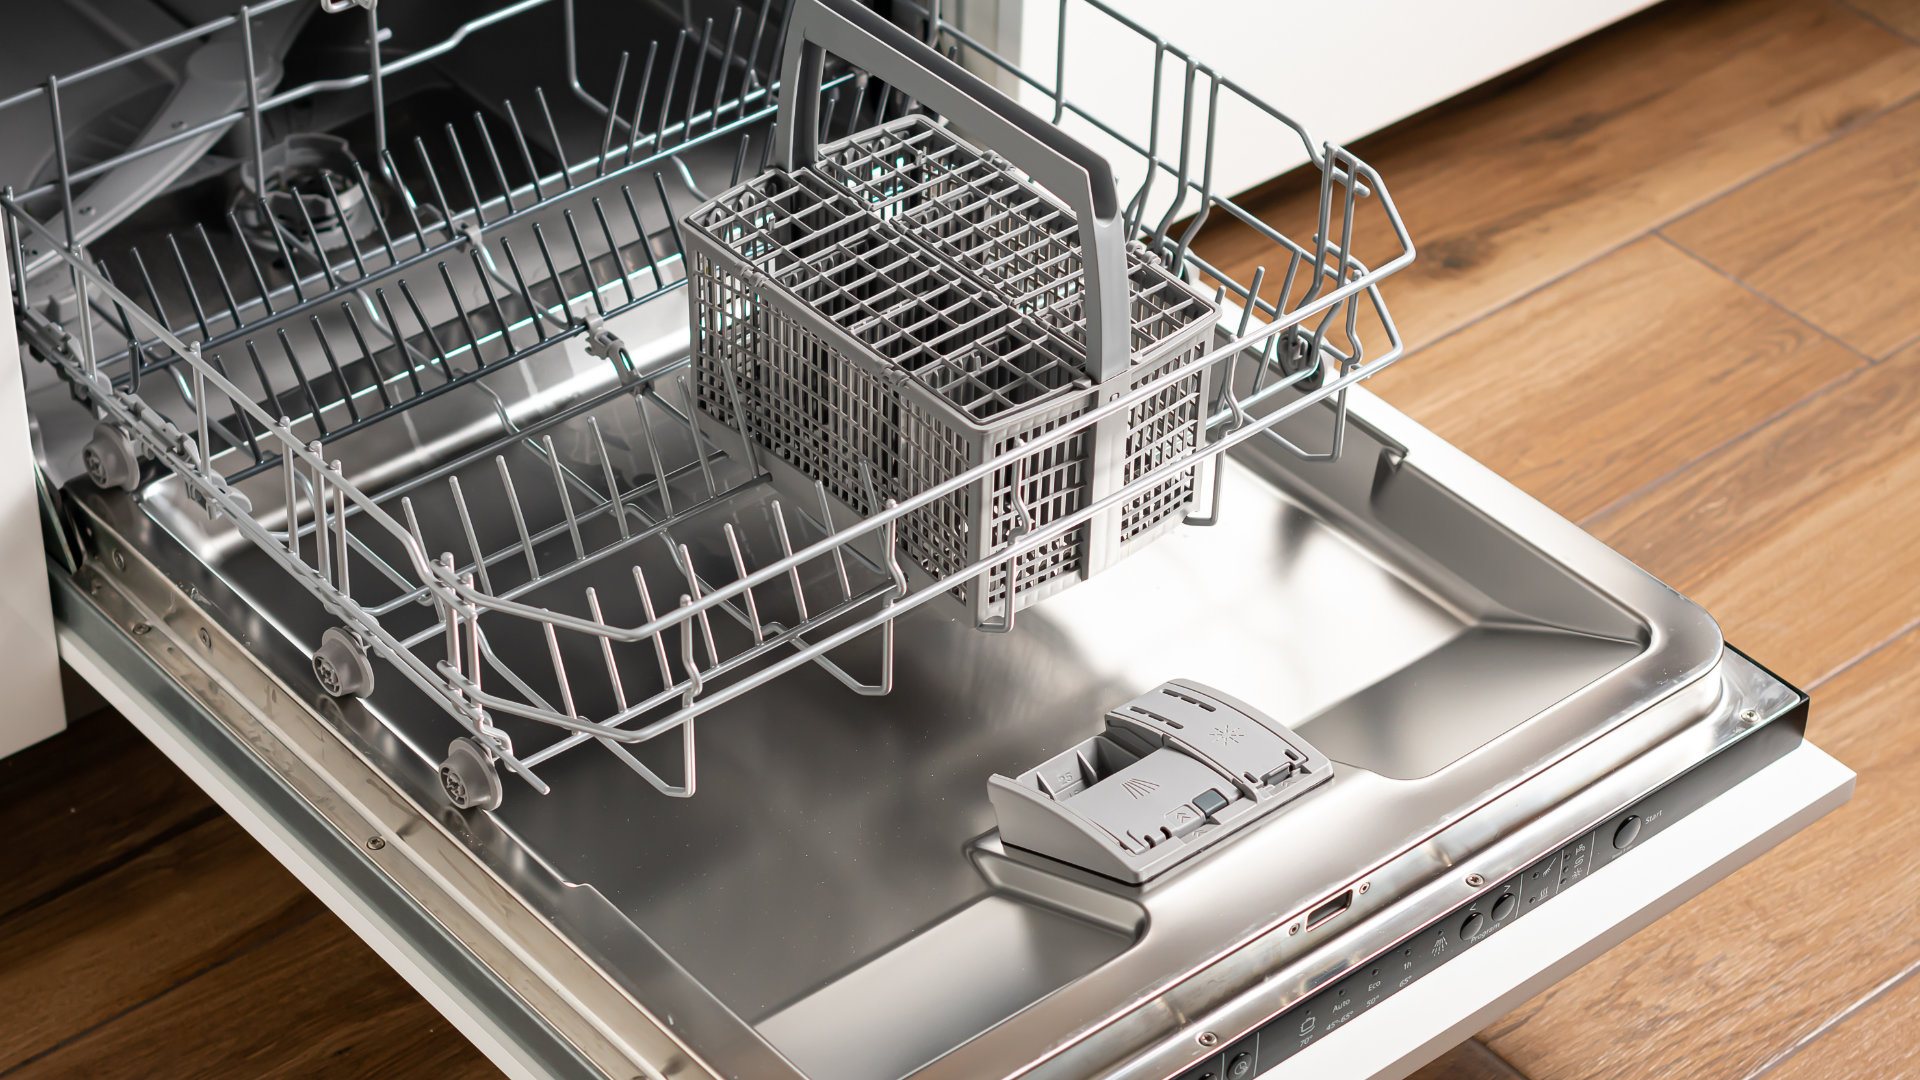 Smart Solutions To 8 Common Dishwasher Annoyances Authorized Service